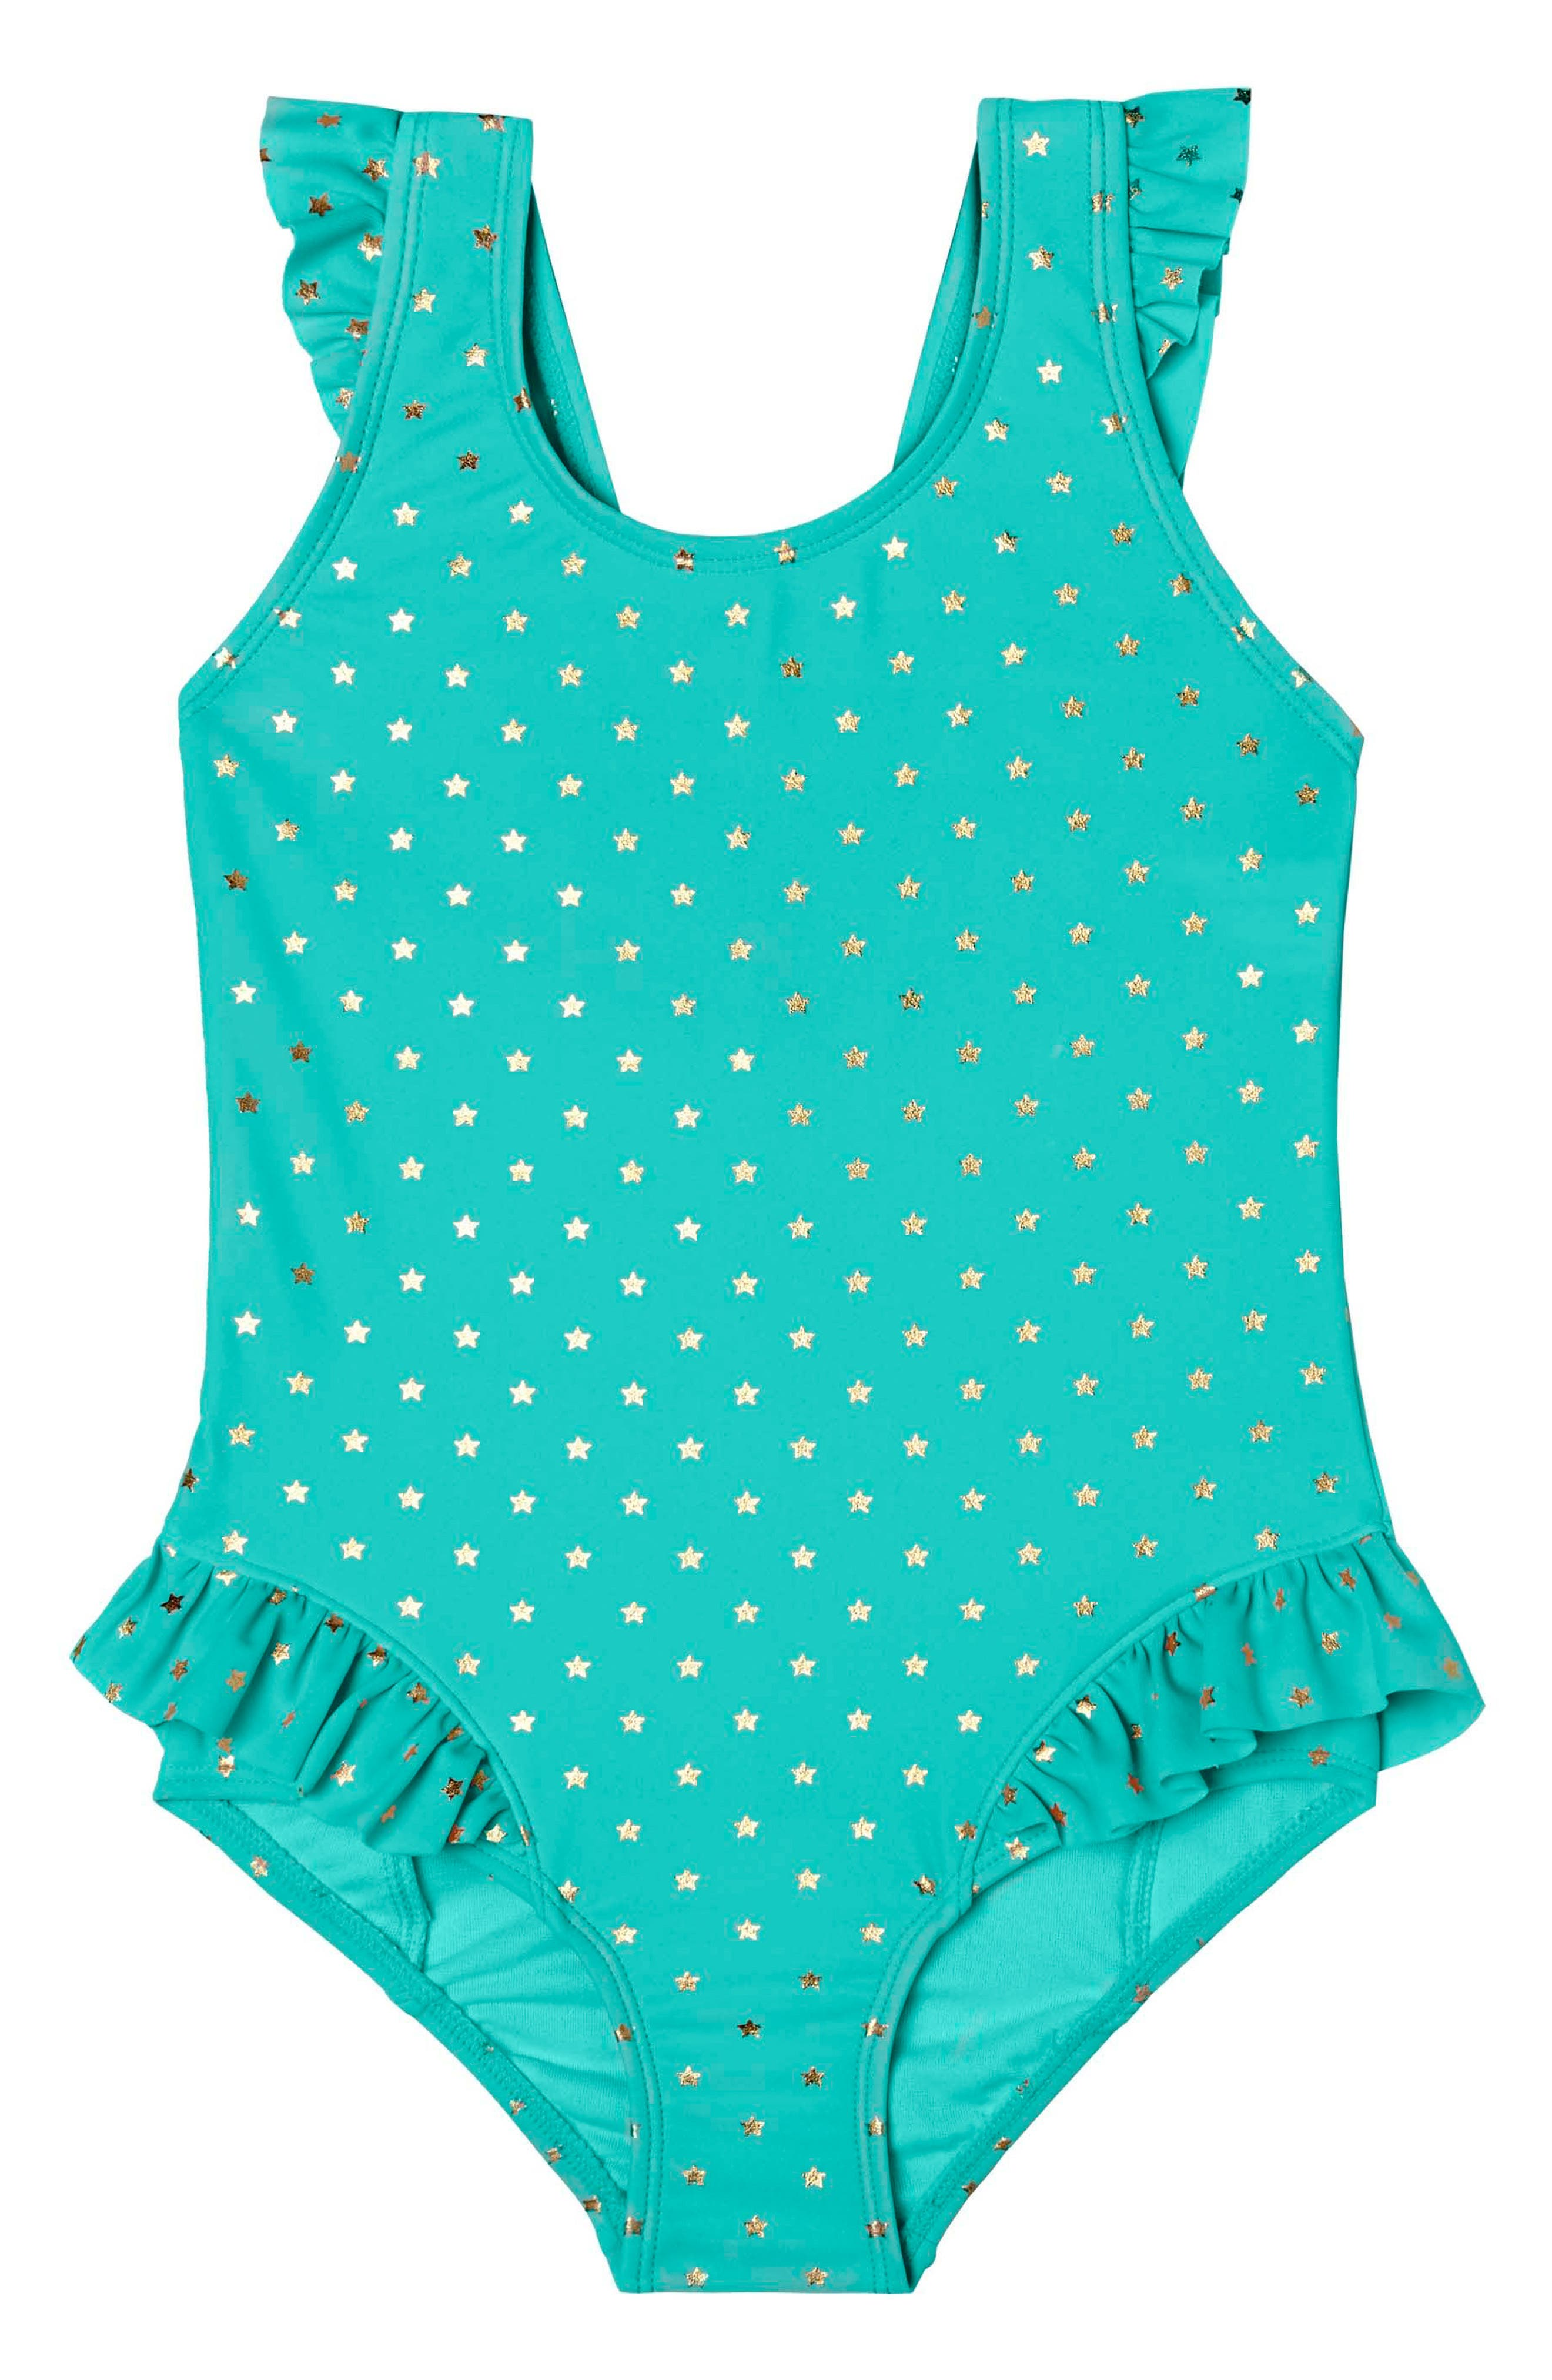 Main Image - Hula Star Twinkle Star One-Piece Swimsuit (Toddler Girls & Little Girls)